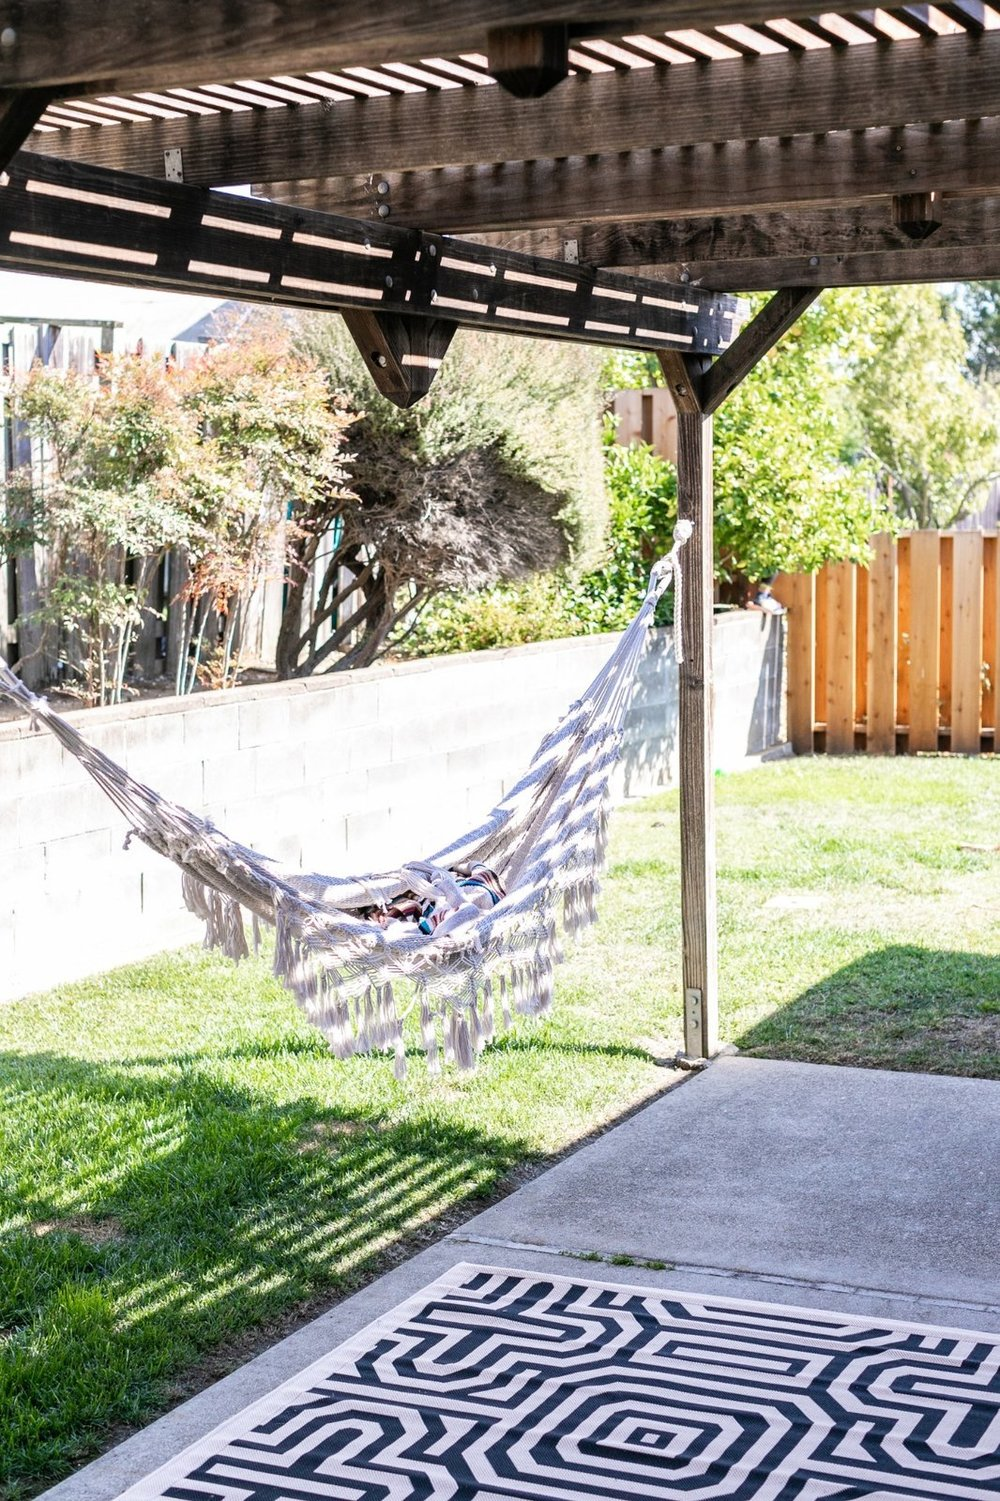 On warm days, Encarnacion can be found lounging in her hammock in the backyard. (Sothear Nuon)